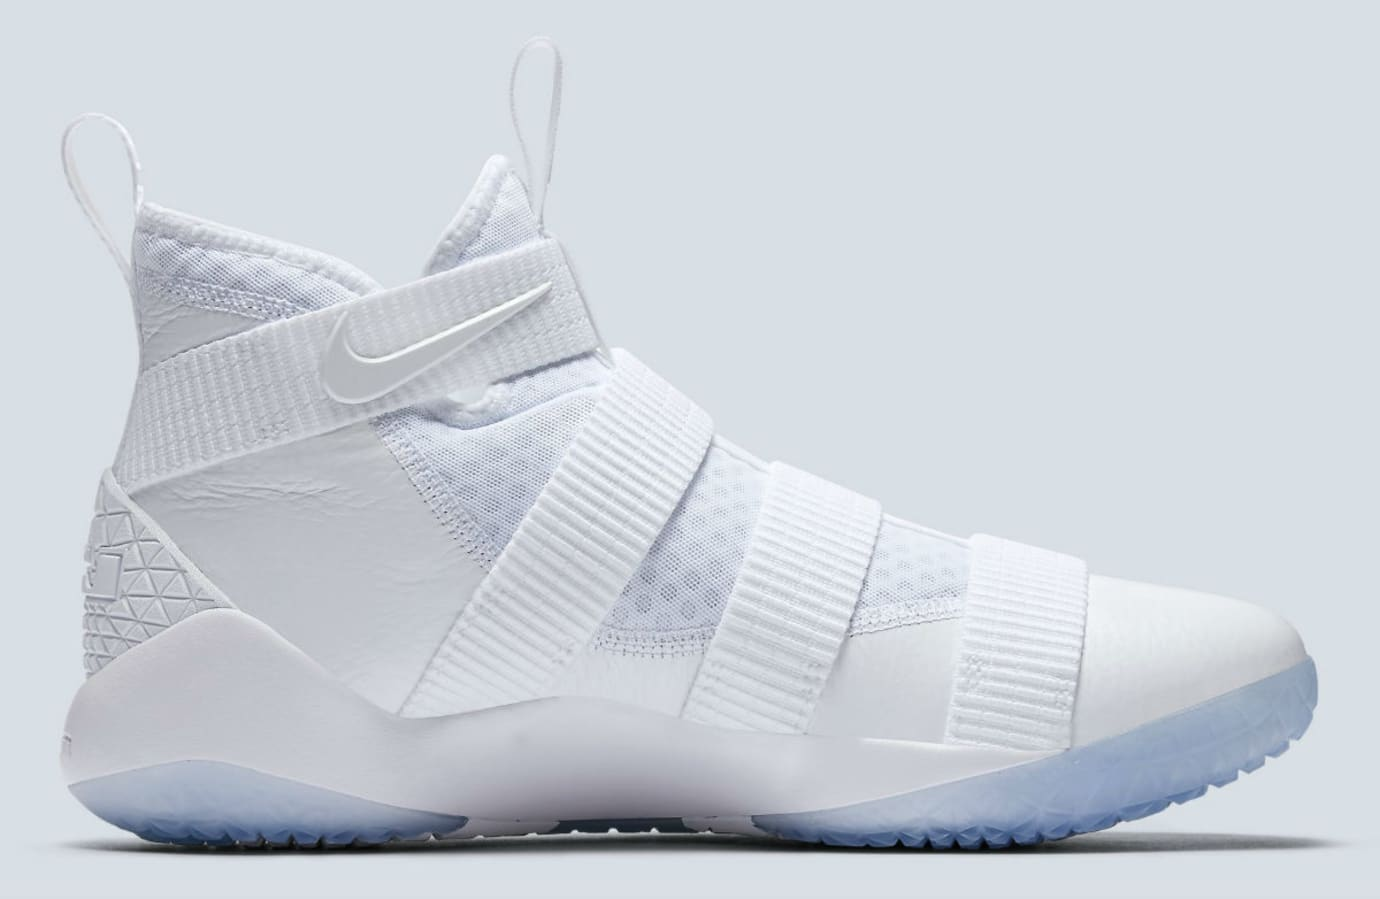 Nike LeBron Soldier 11 White Release Date Medial 897644-103